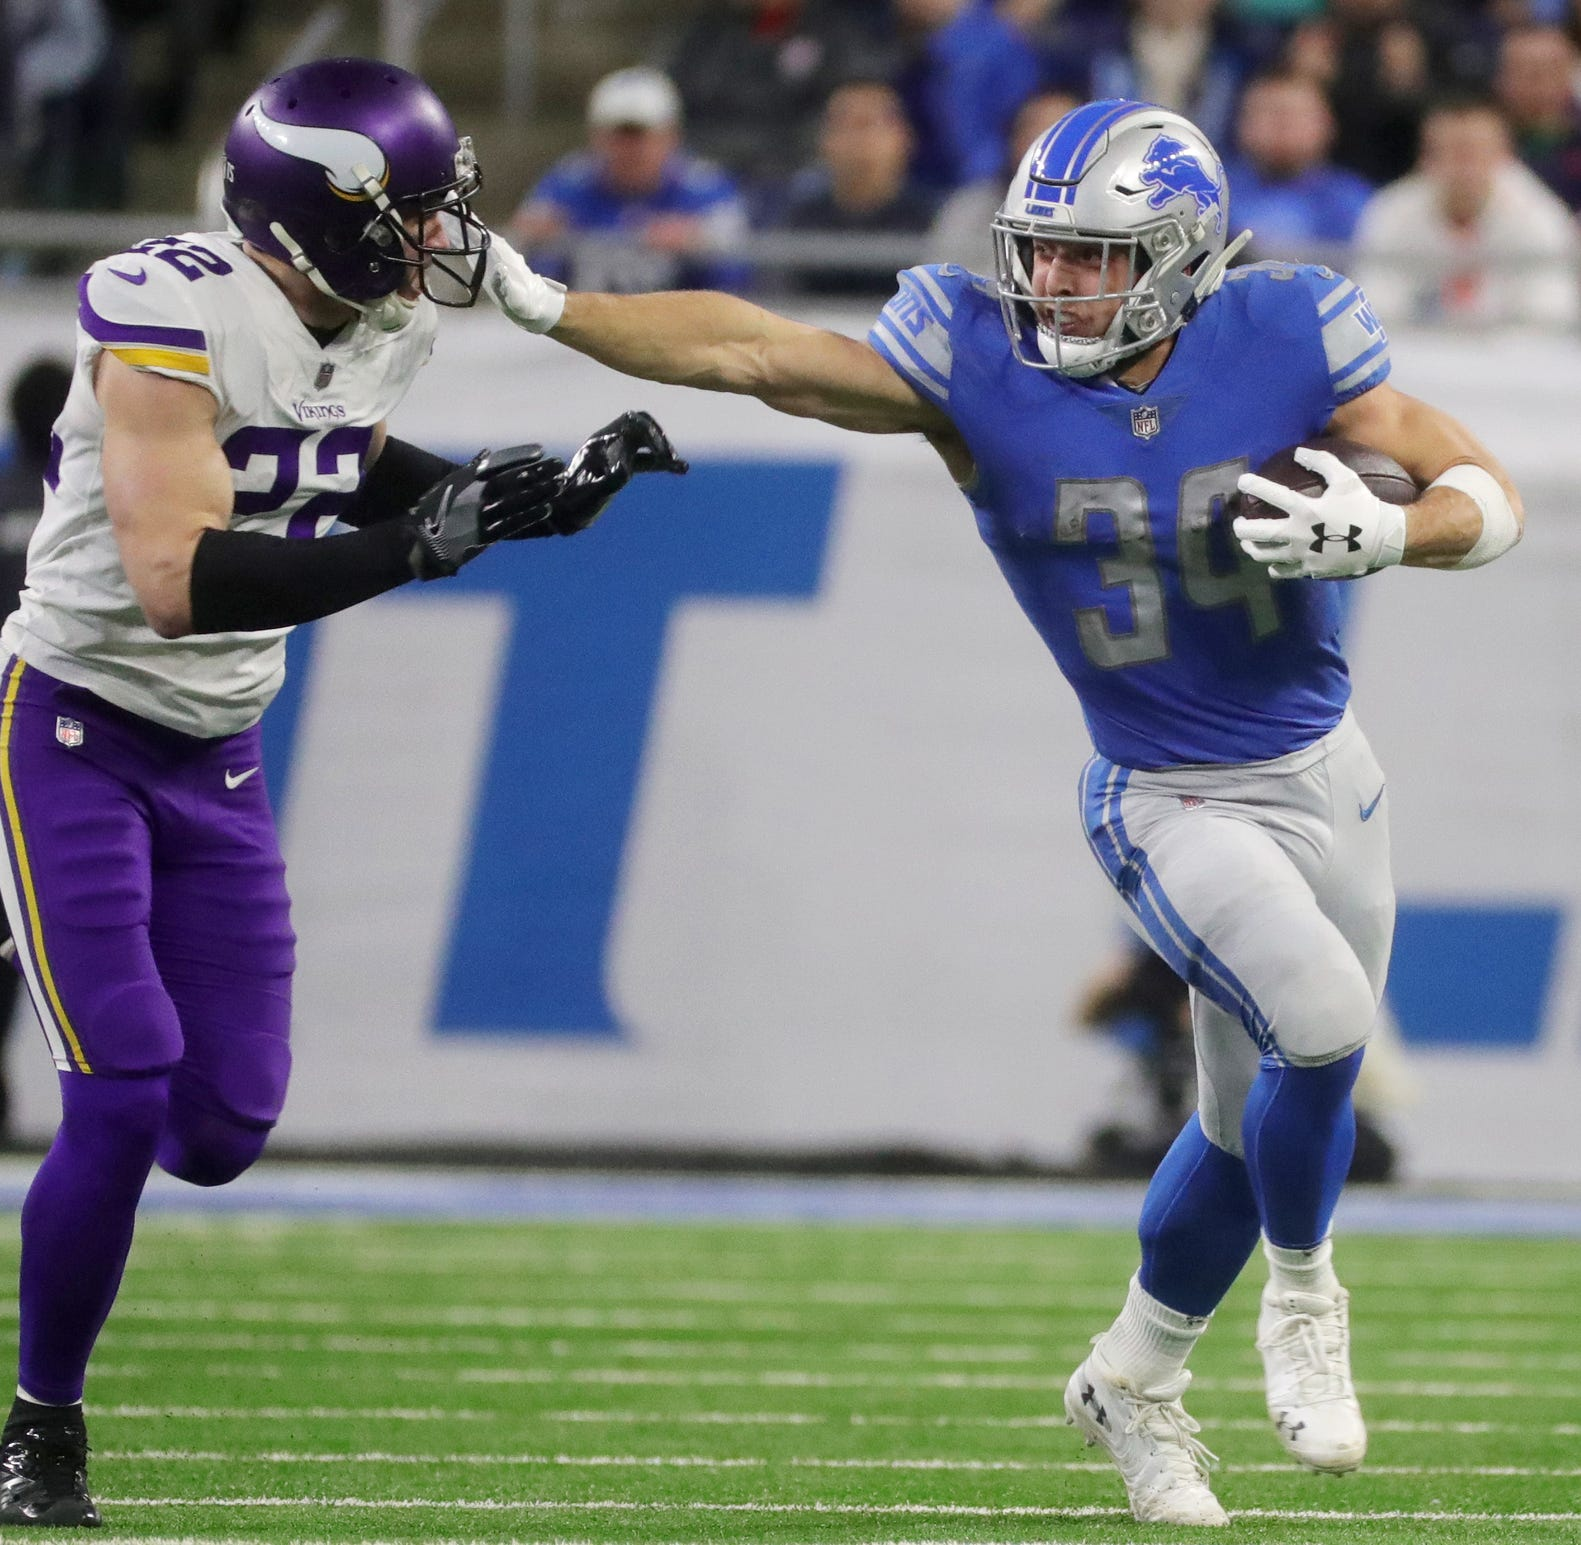 Zach Zenner signs 1-year deal to stay with Detroit Lions